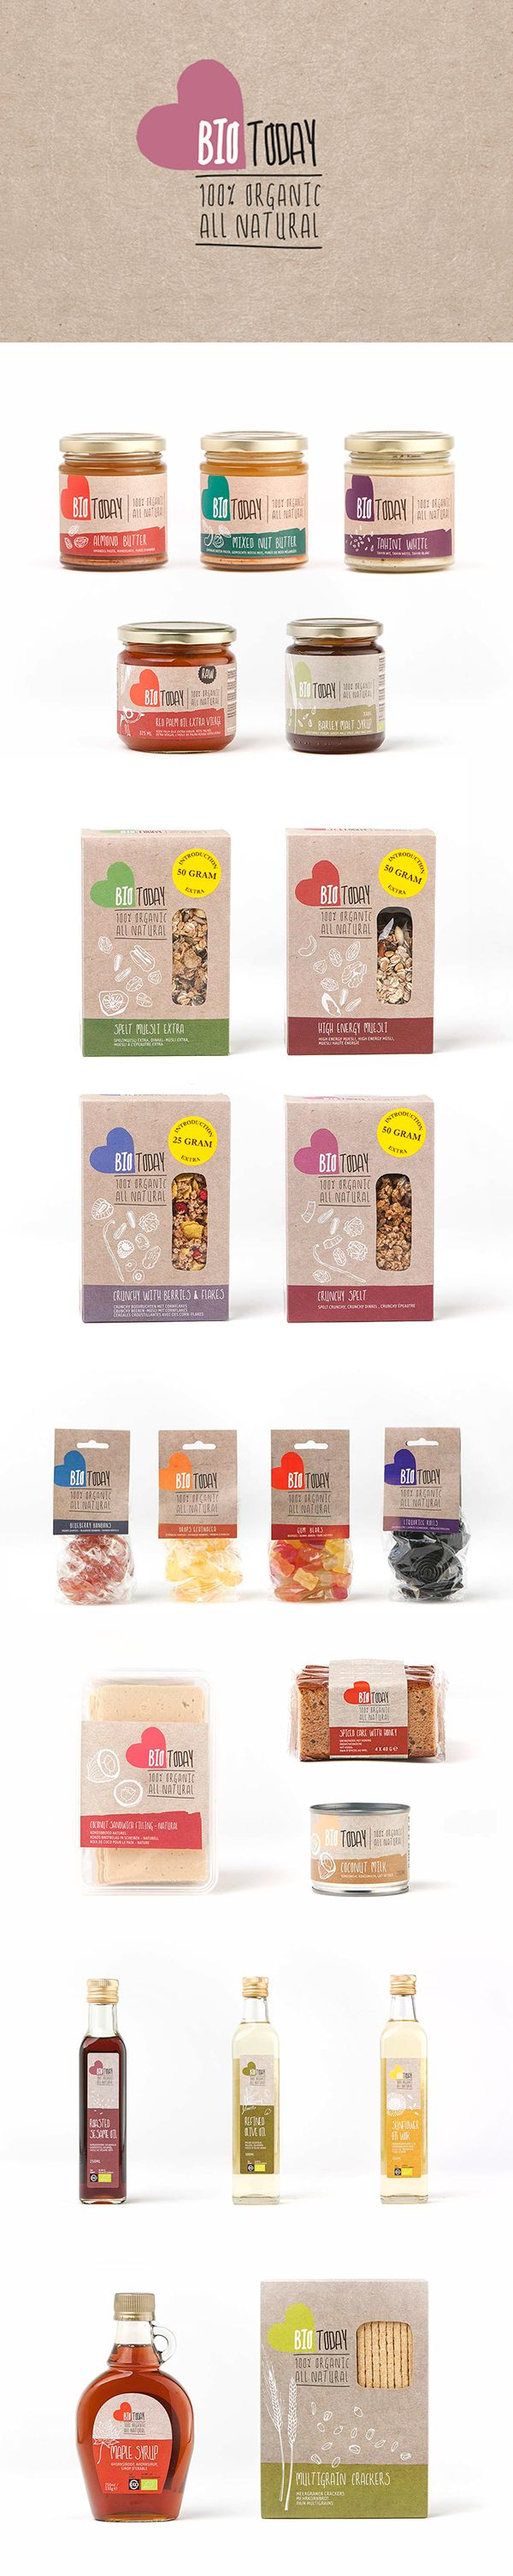 Identity & Packaging for BIO Today. Designed @ maan.nl concept & creatiion. Branding, Graphic, Design, Packaging  PD